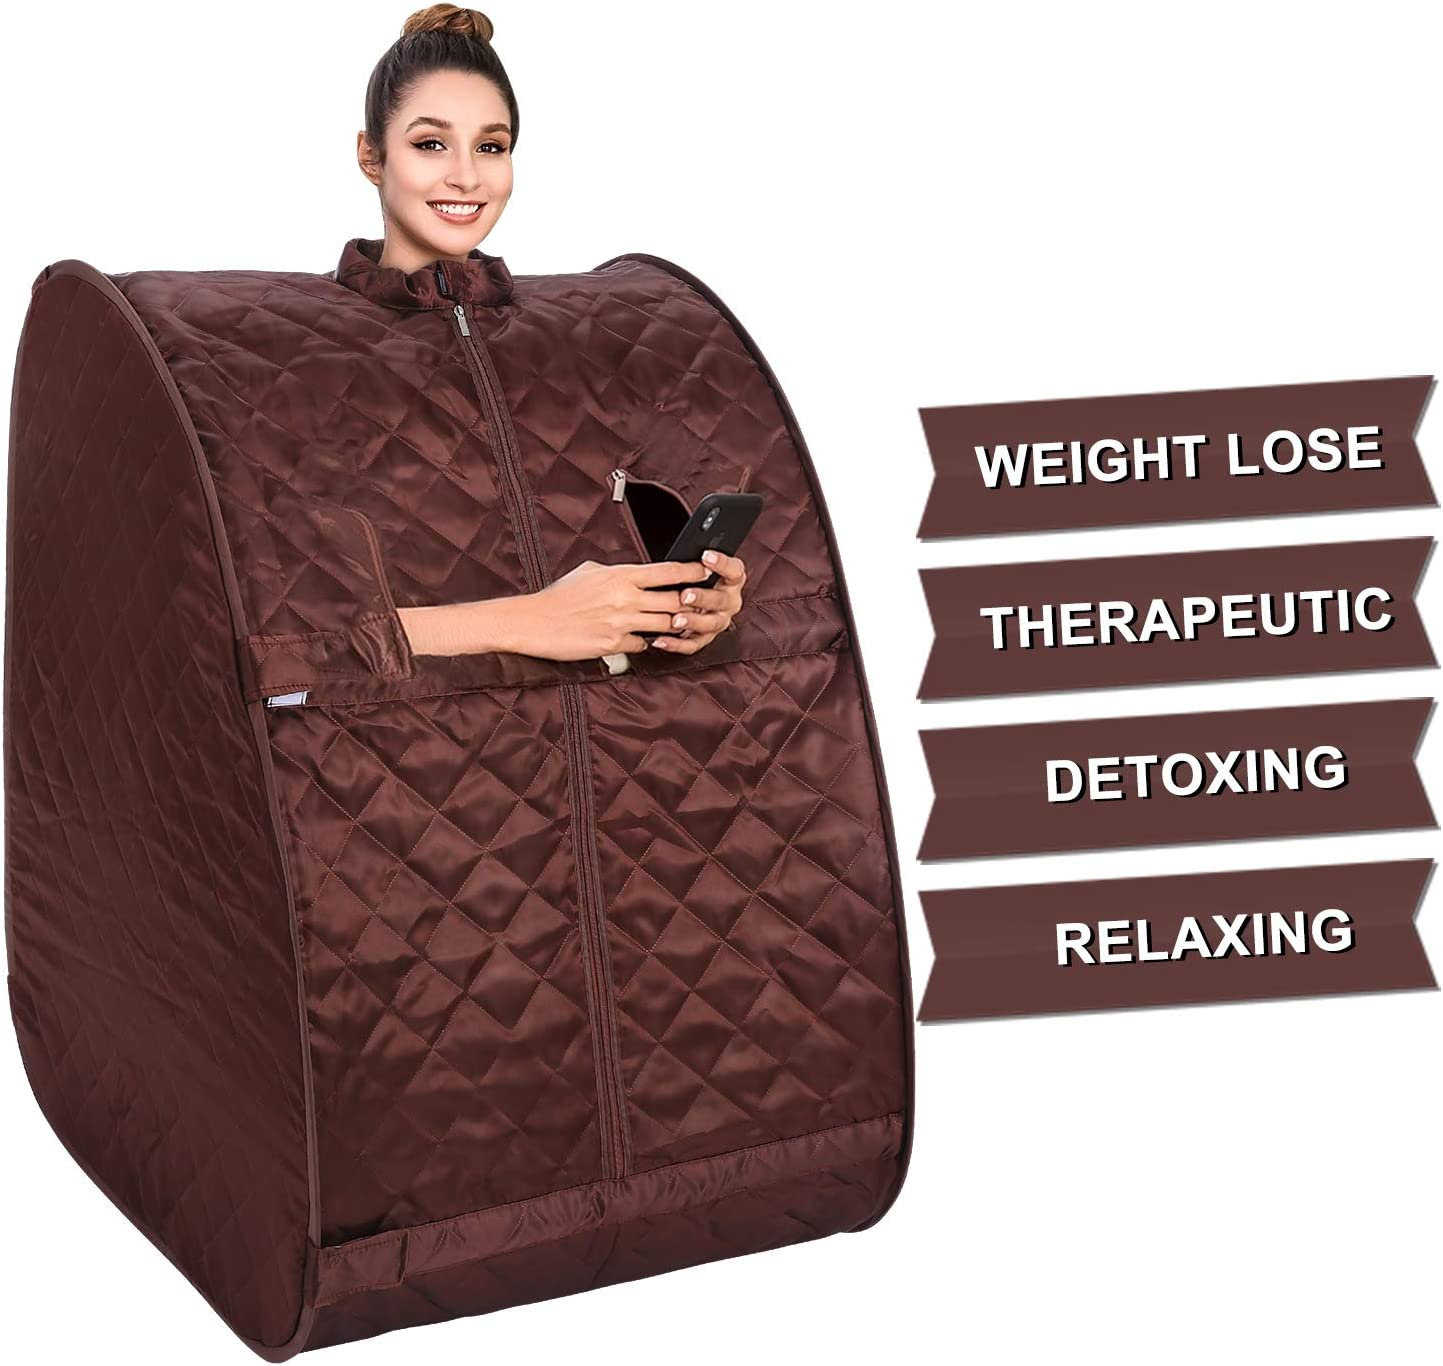 OppsDecor Portable Steam Sauna, 2L Personal Therapeutic Sauna Home Spa for Weight Loss Detox Relaxation Slimming,One Person Sauna with Remote Control,Foldable Chair,Timer US Plug Coffee